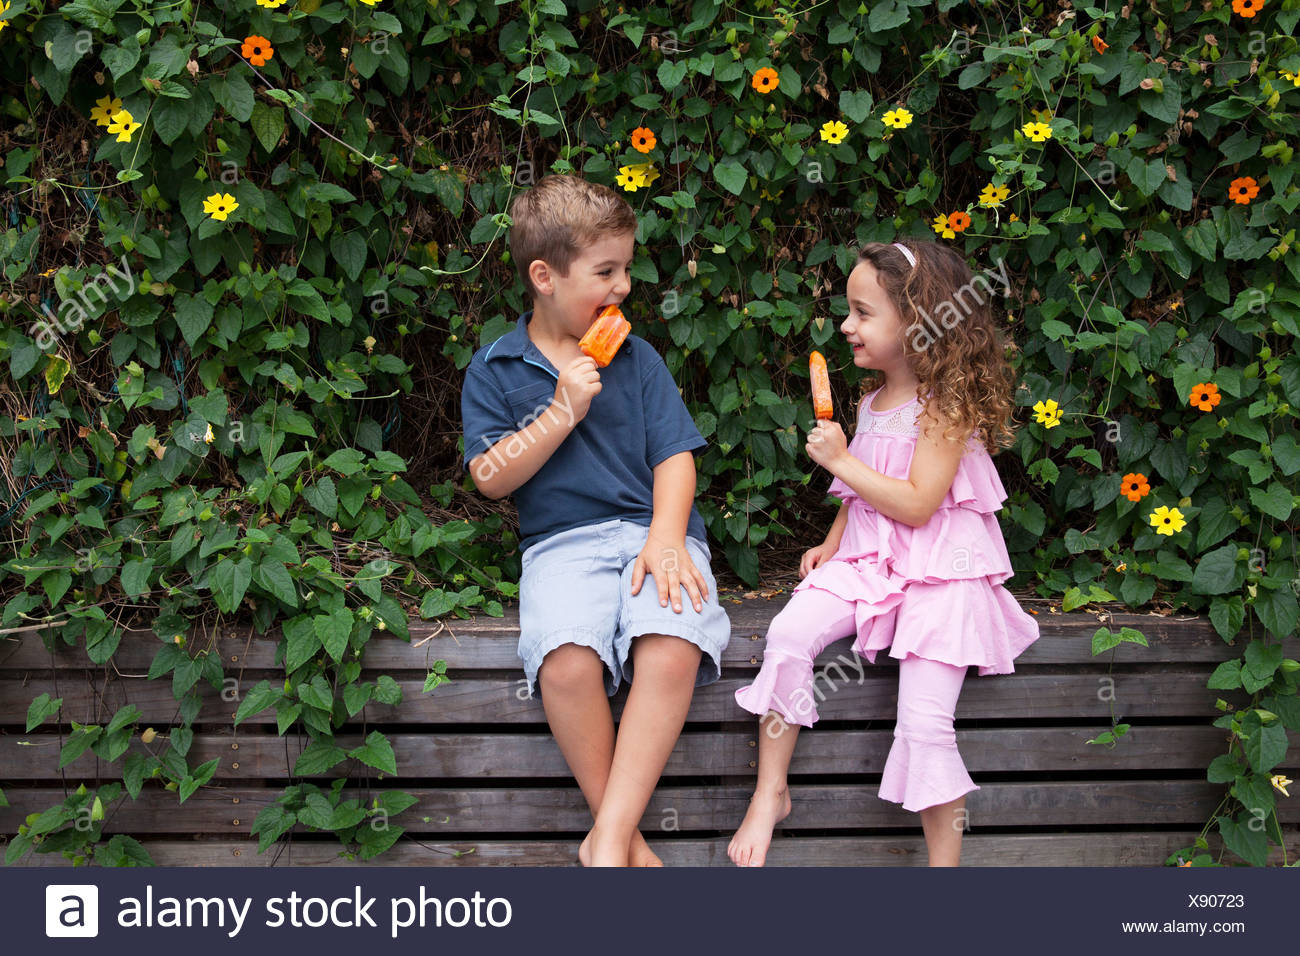 Brother and sister eating ice lollies by plants Stock Photo